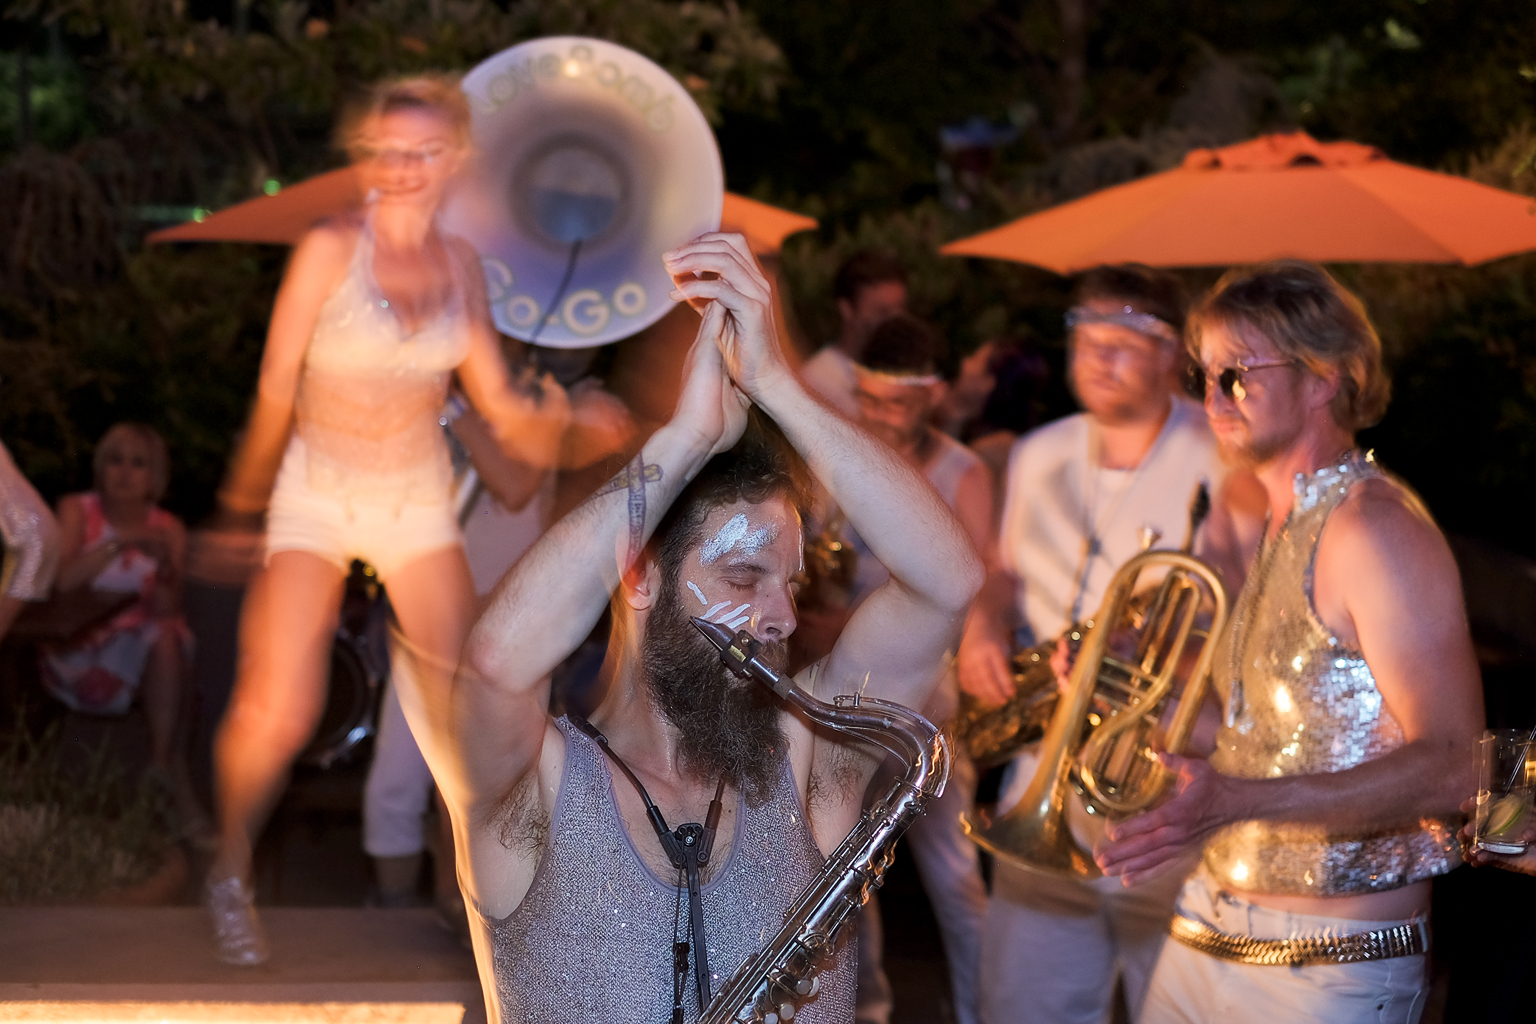 Love Bomb Go-Go, a self-described marching band of intergalactic marching freaks from Outer Space wowed the crowd with a late-night performance.